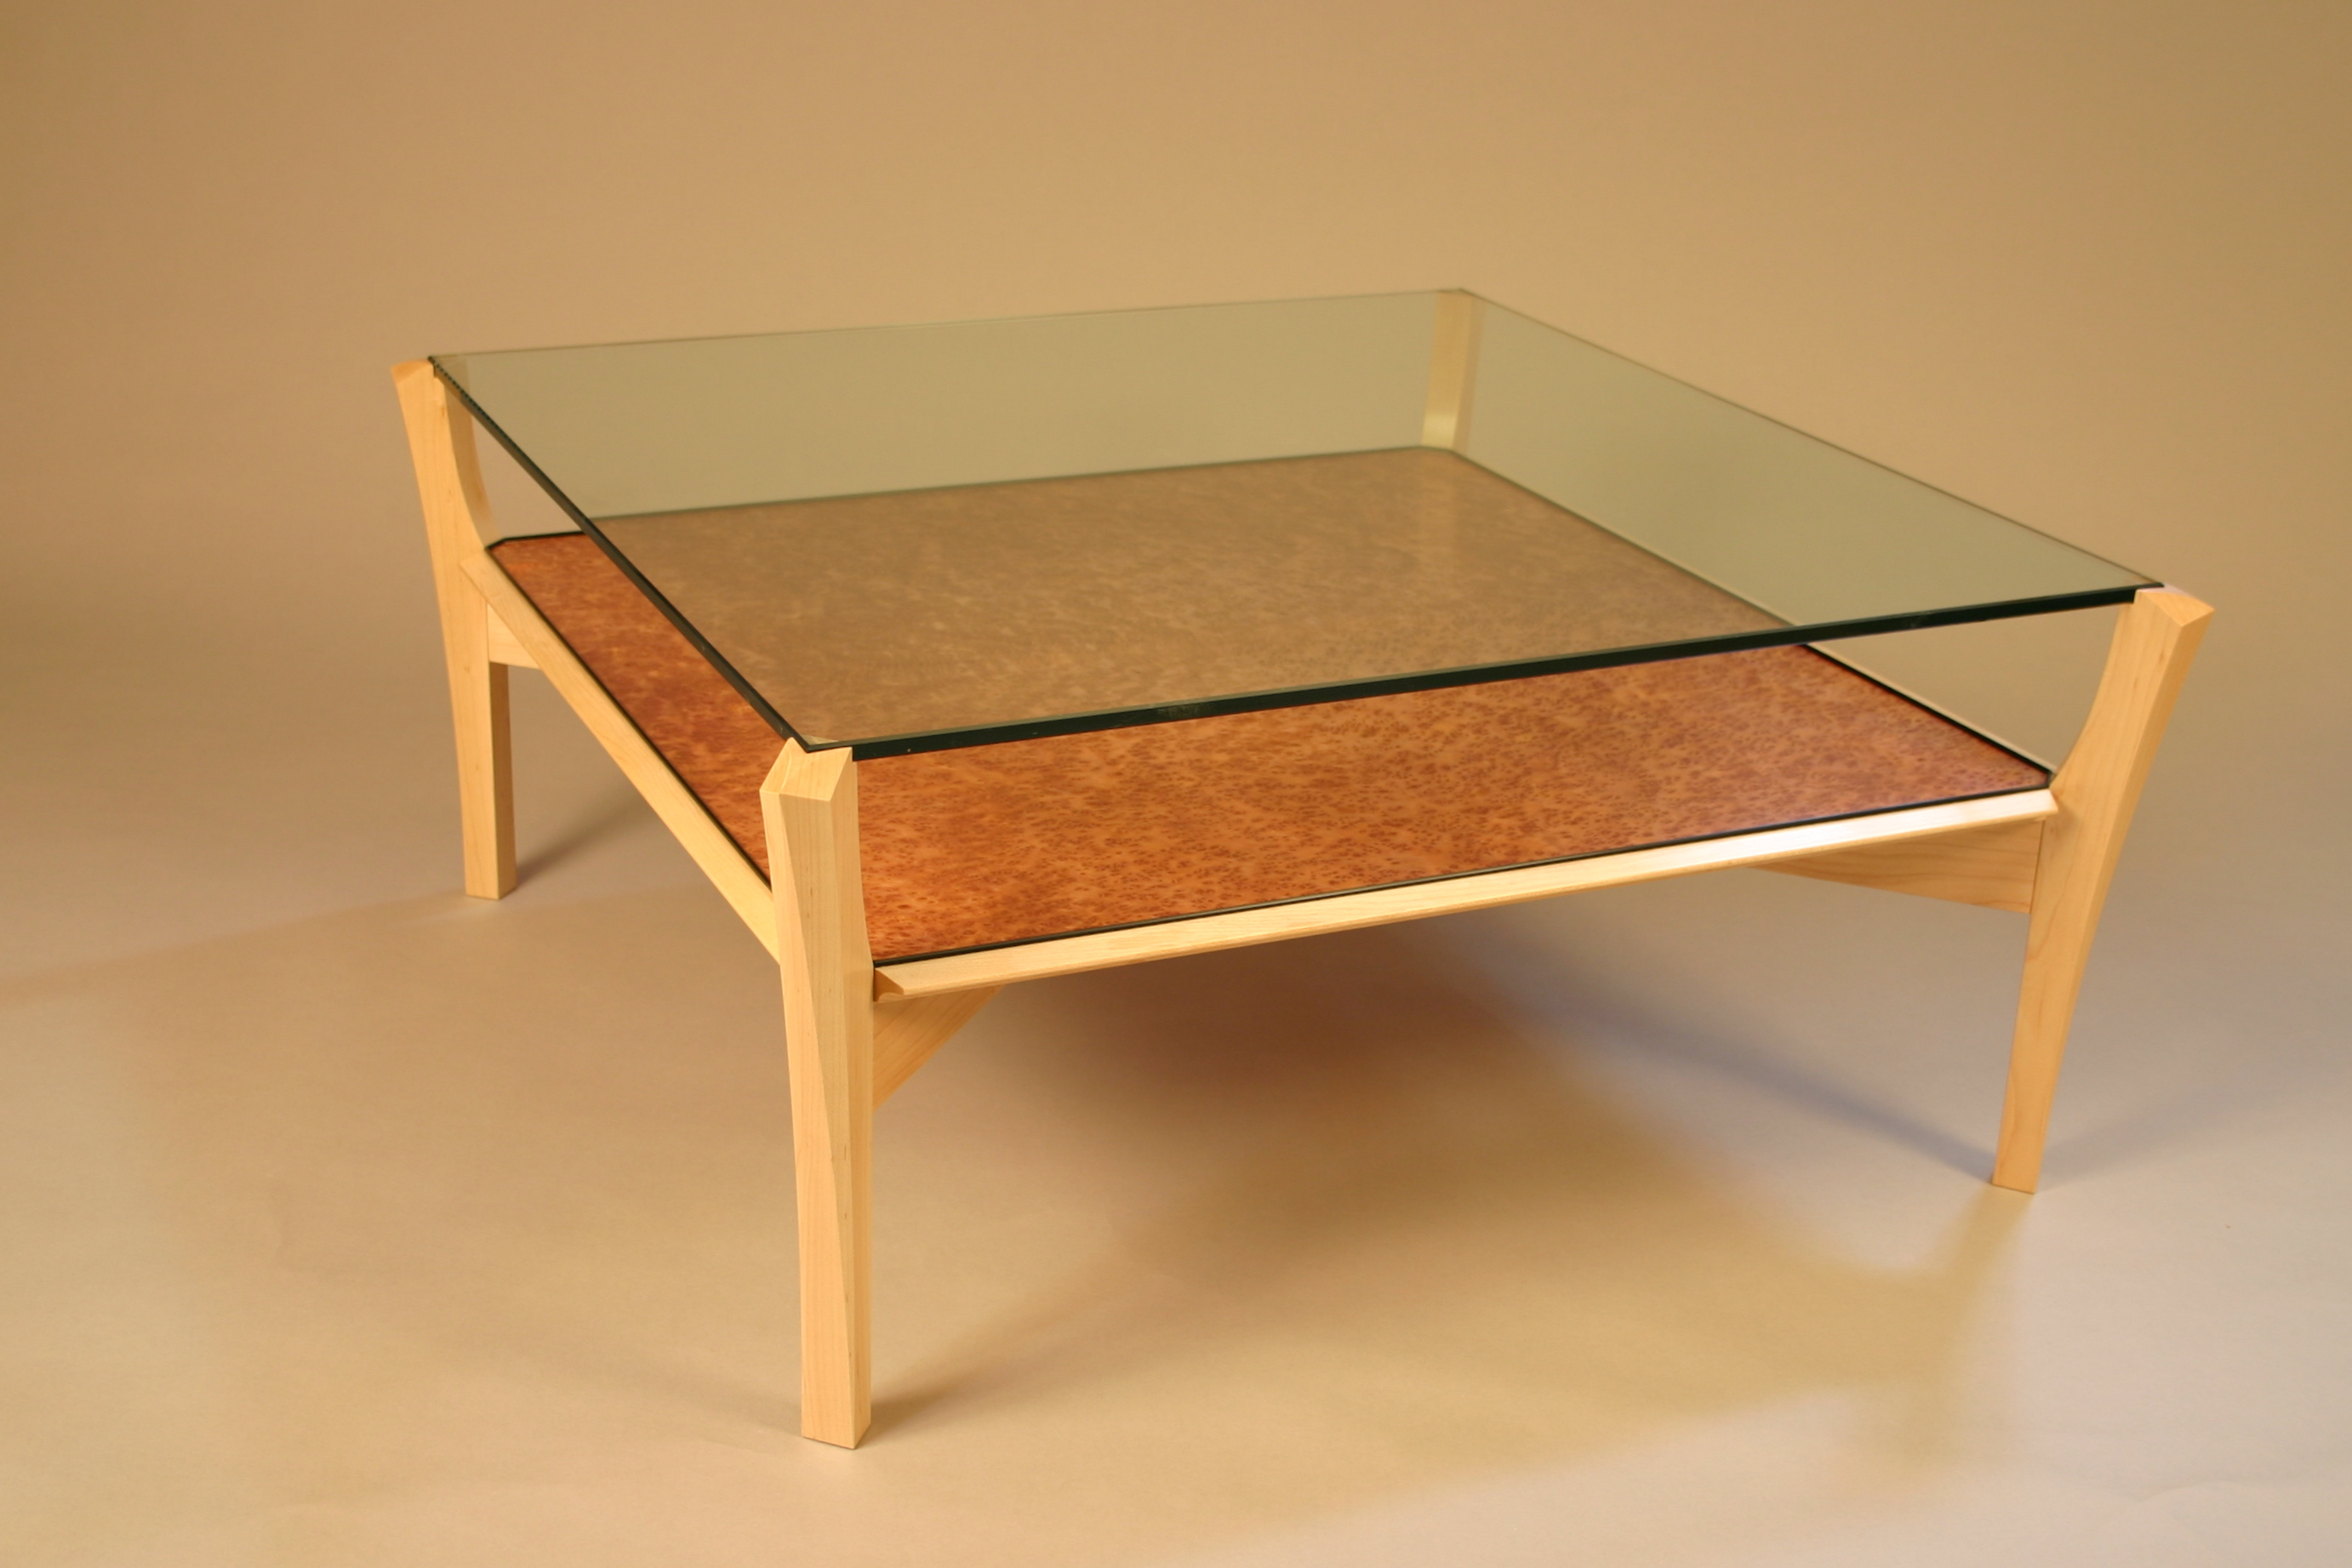 coffee-tables-glass-top-reitmeyer-furniture-design-round-coffee-table-with-storage-cheap-images-gallery (Image 7 of 9)